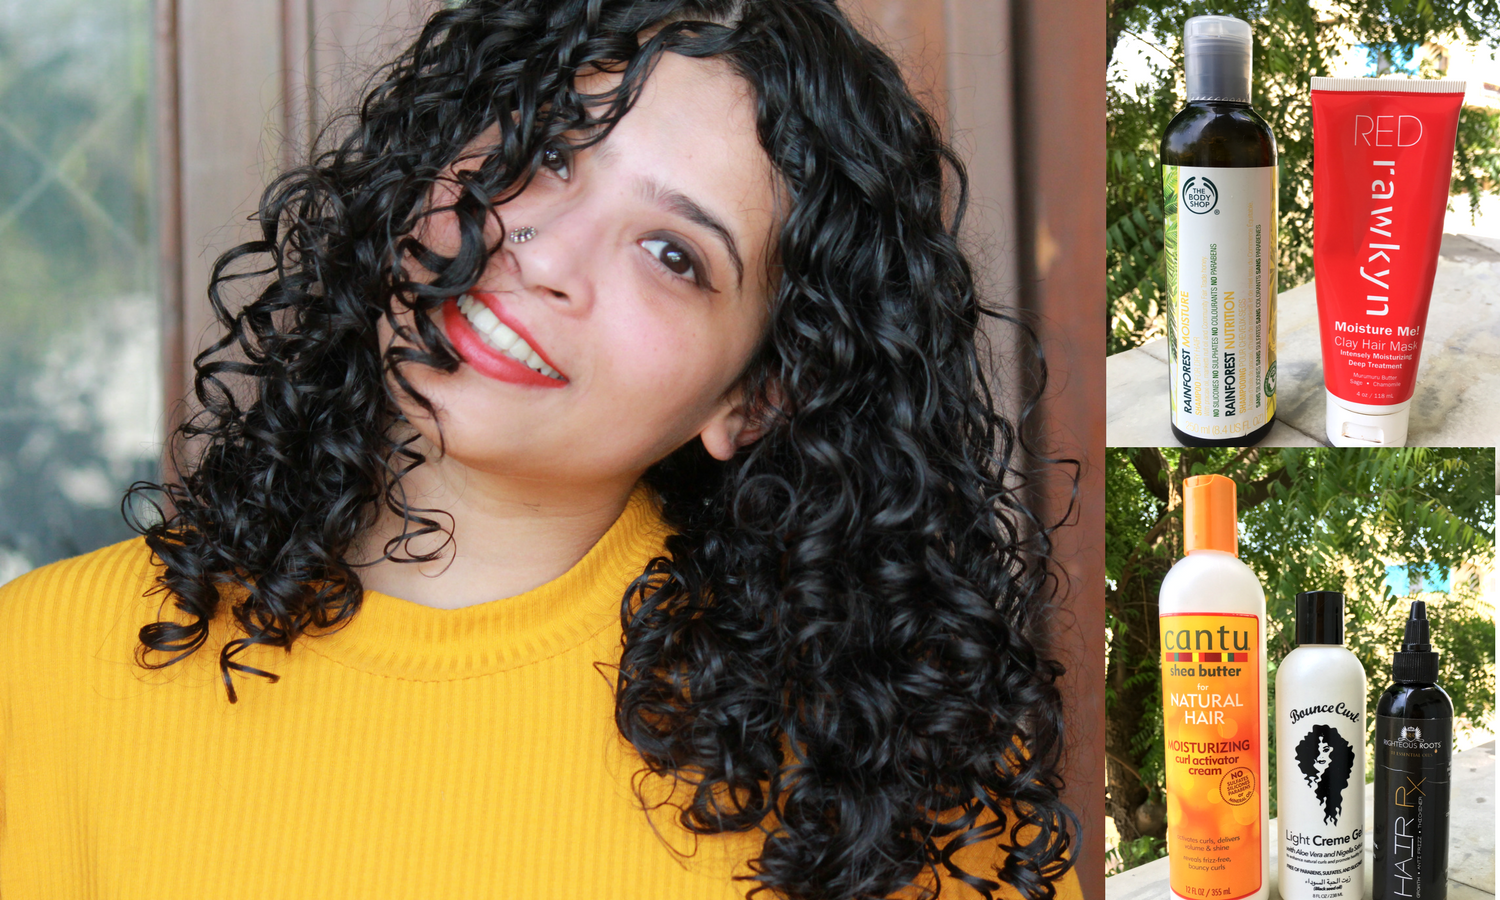 Nothing But Natural Hair Product Reviews